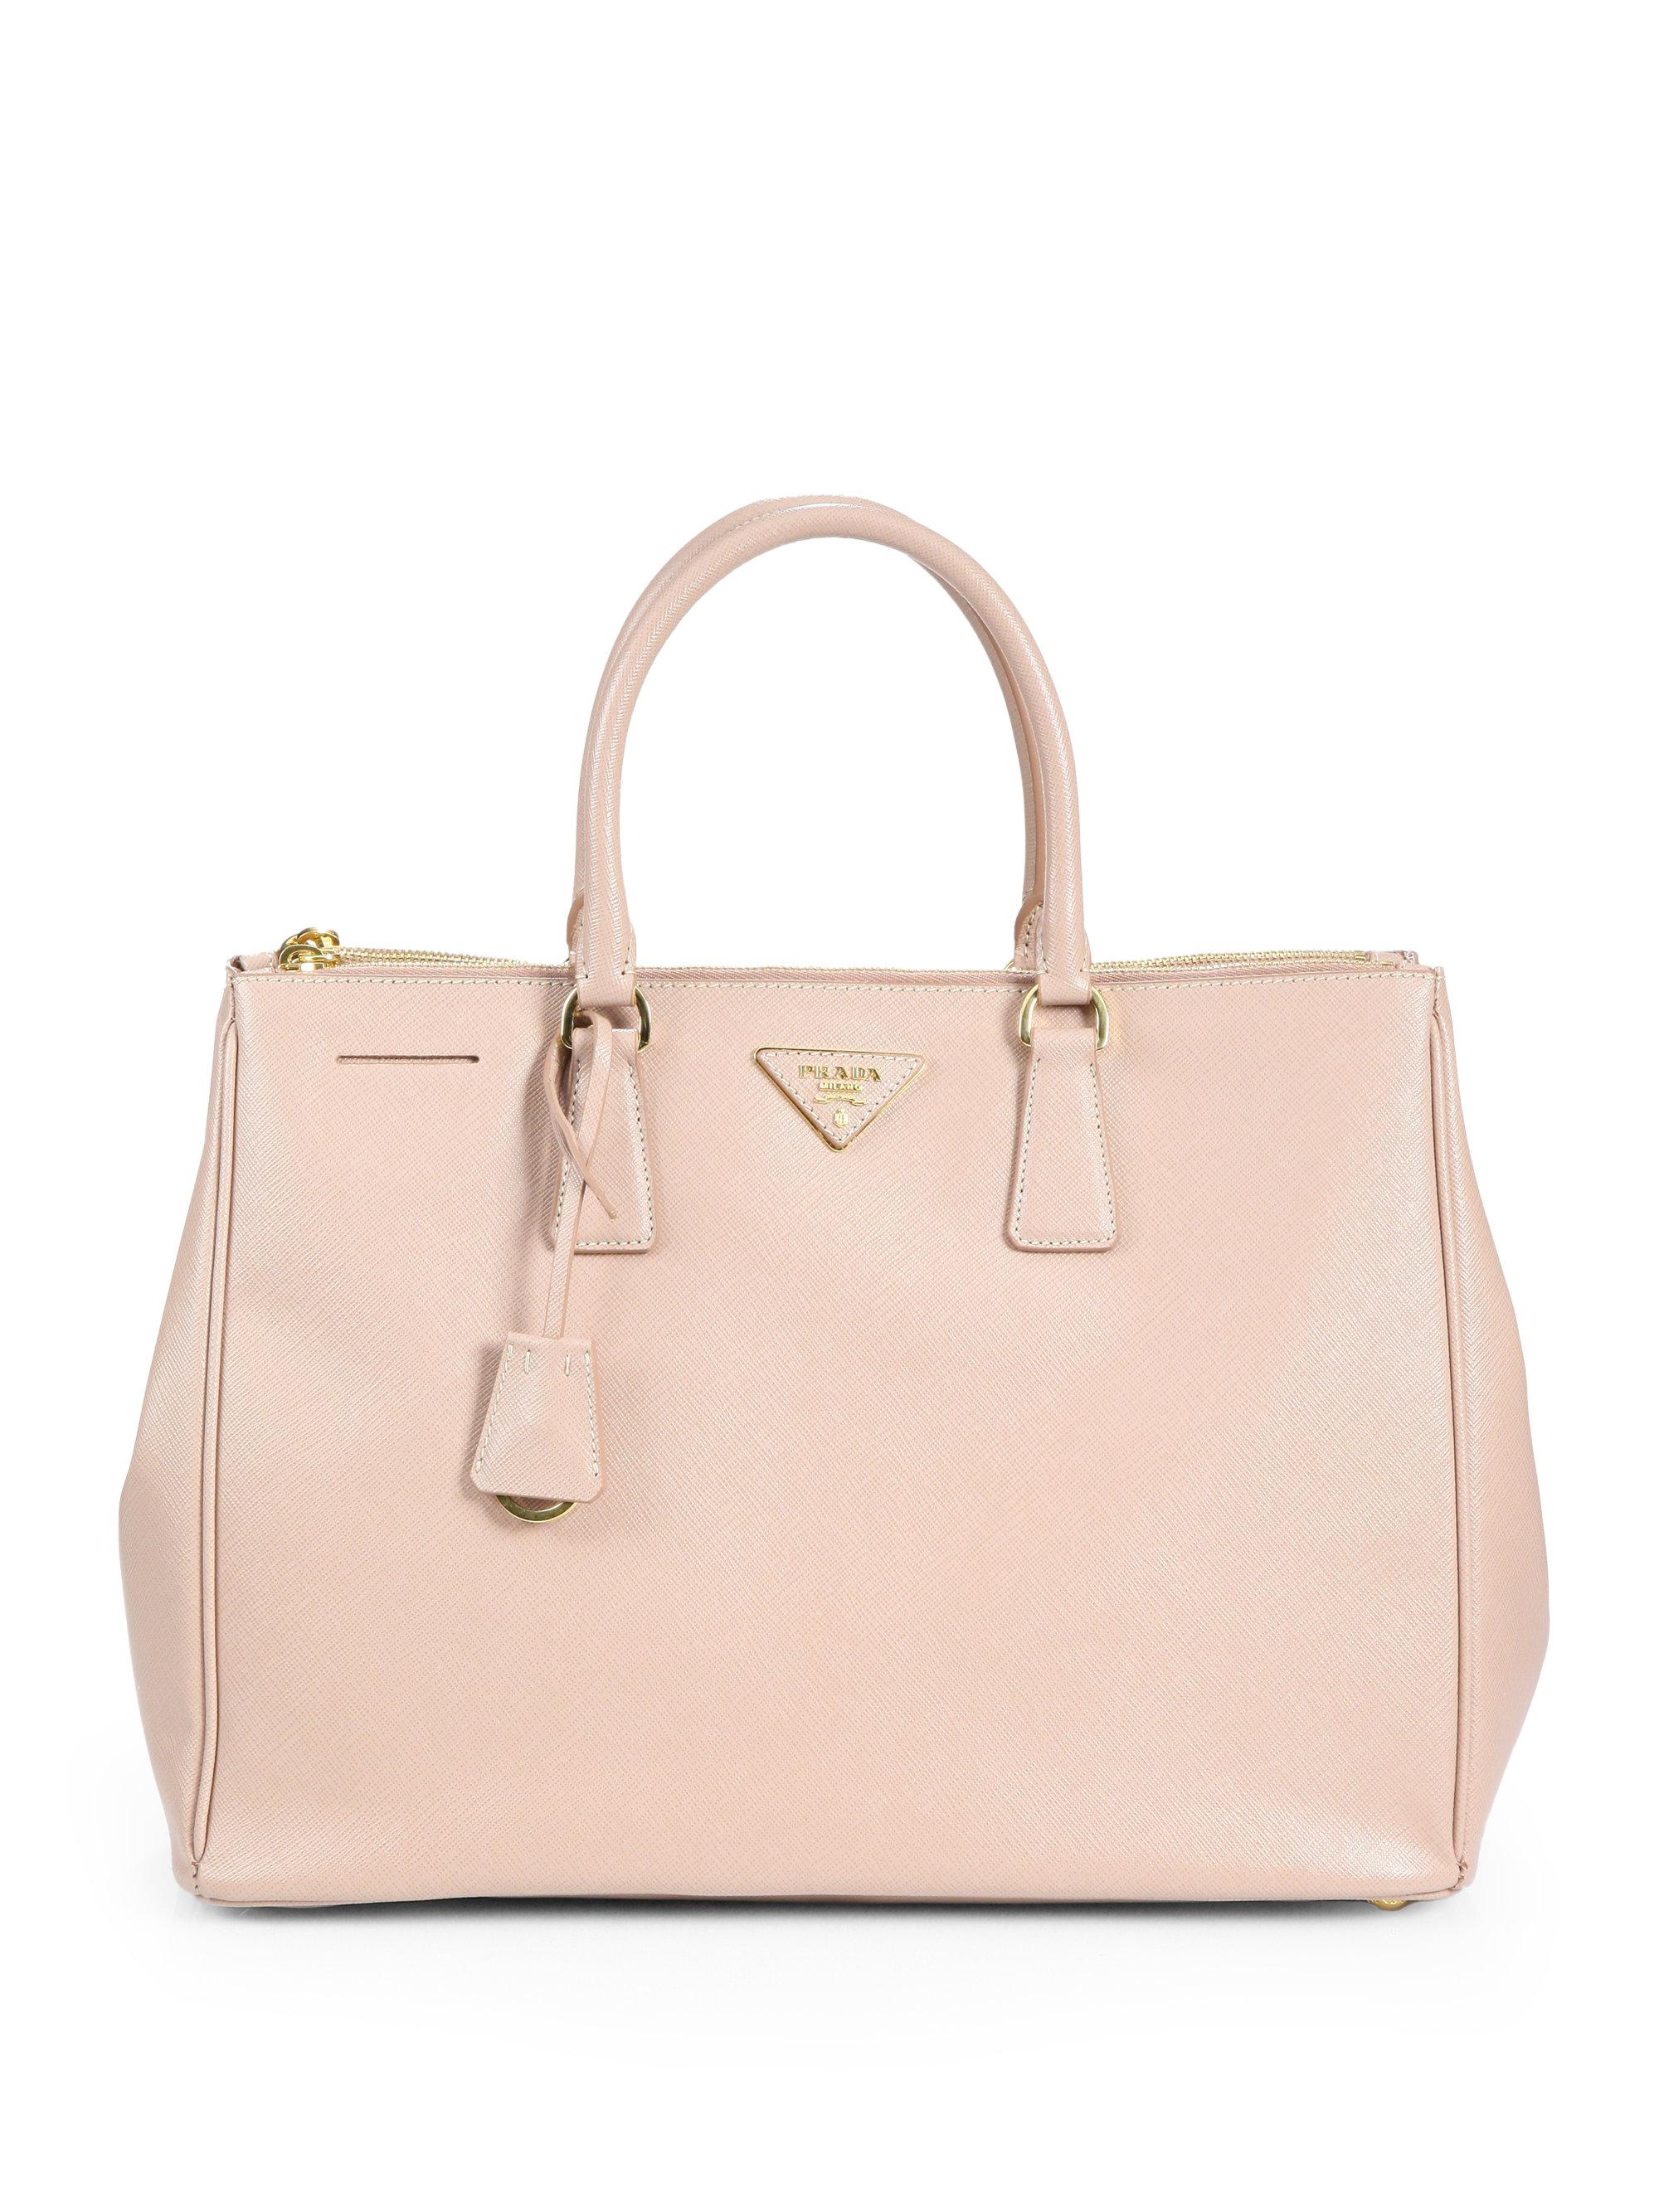 Lyst - Prada Saffiano Lux Large Double-zip Tote in Natural 685085d165b0d